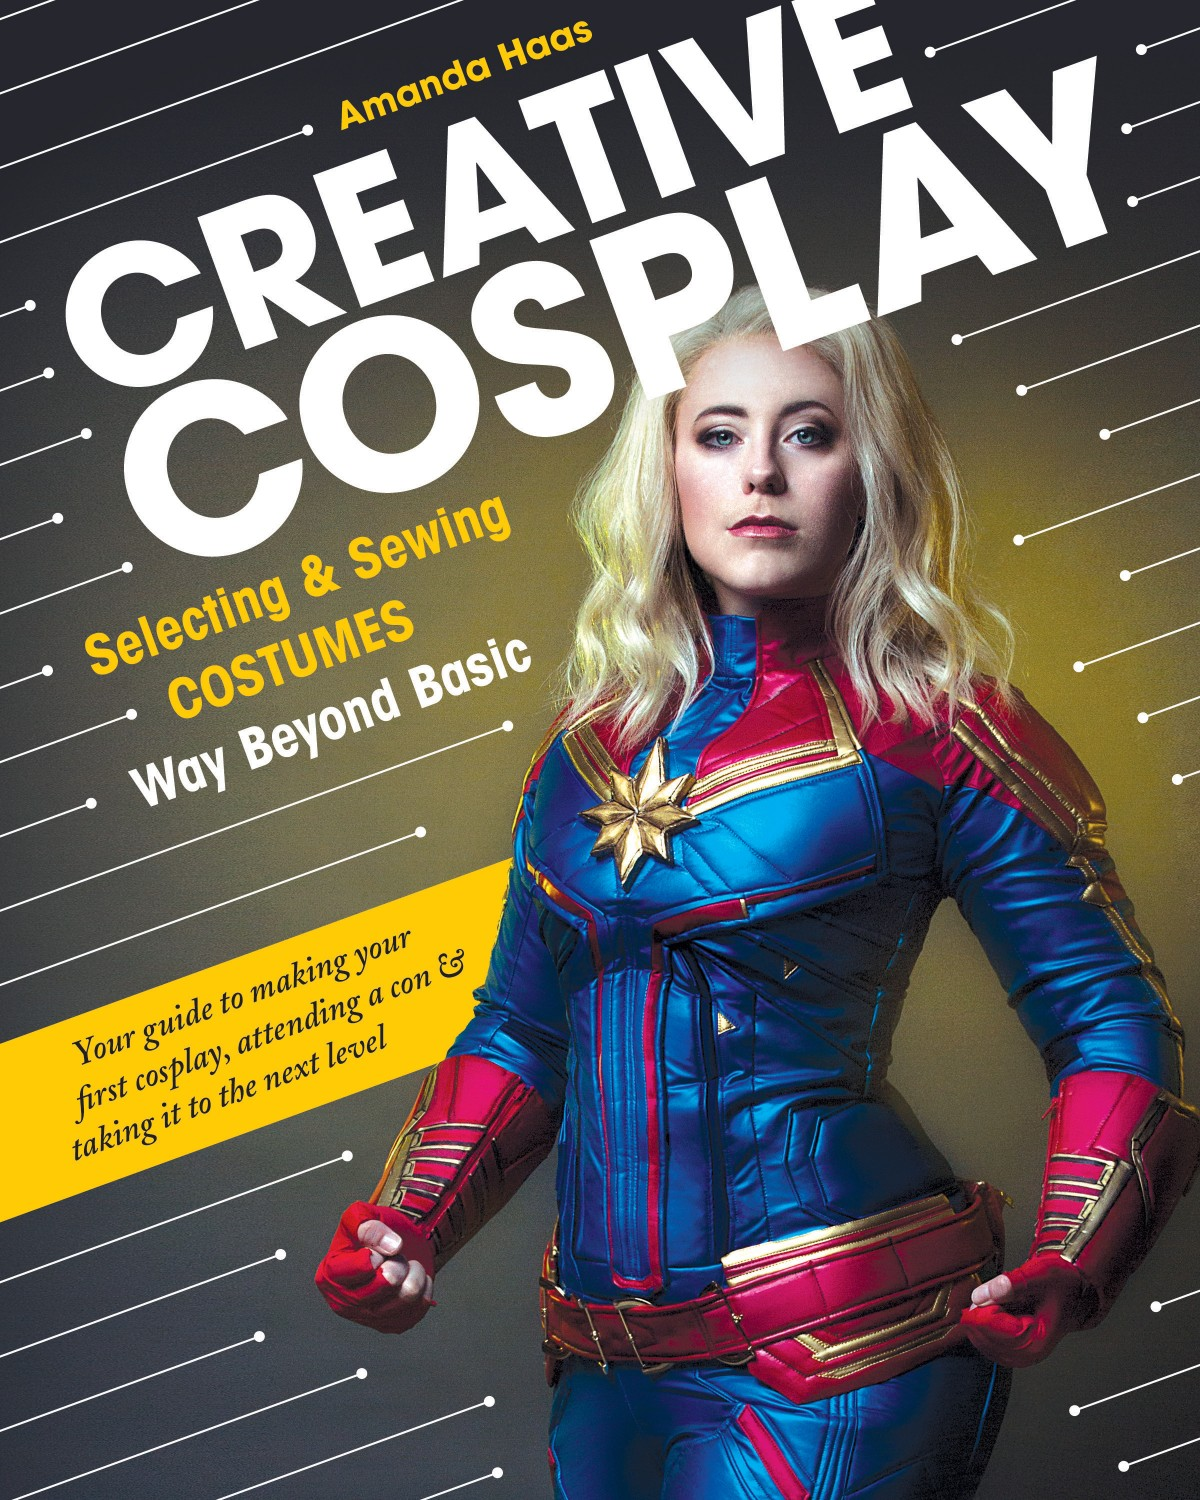 Creative Cosplay ~RELEASE DATE: Sept. 25, 2020~